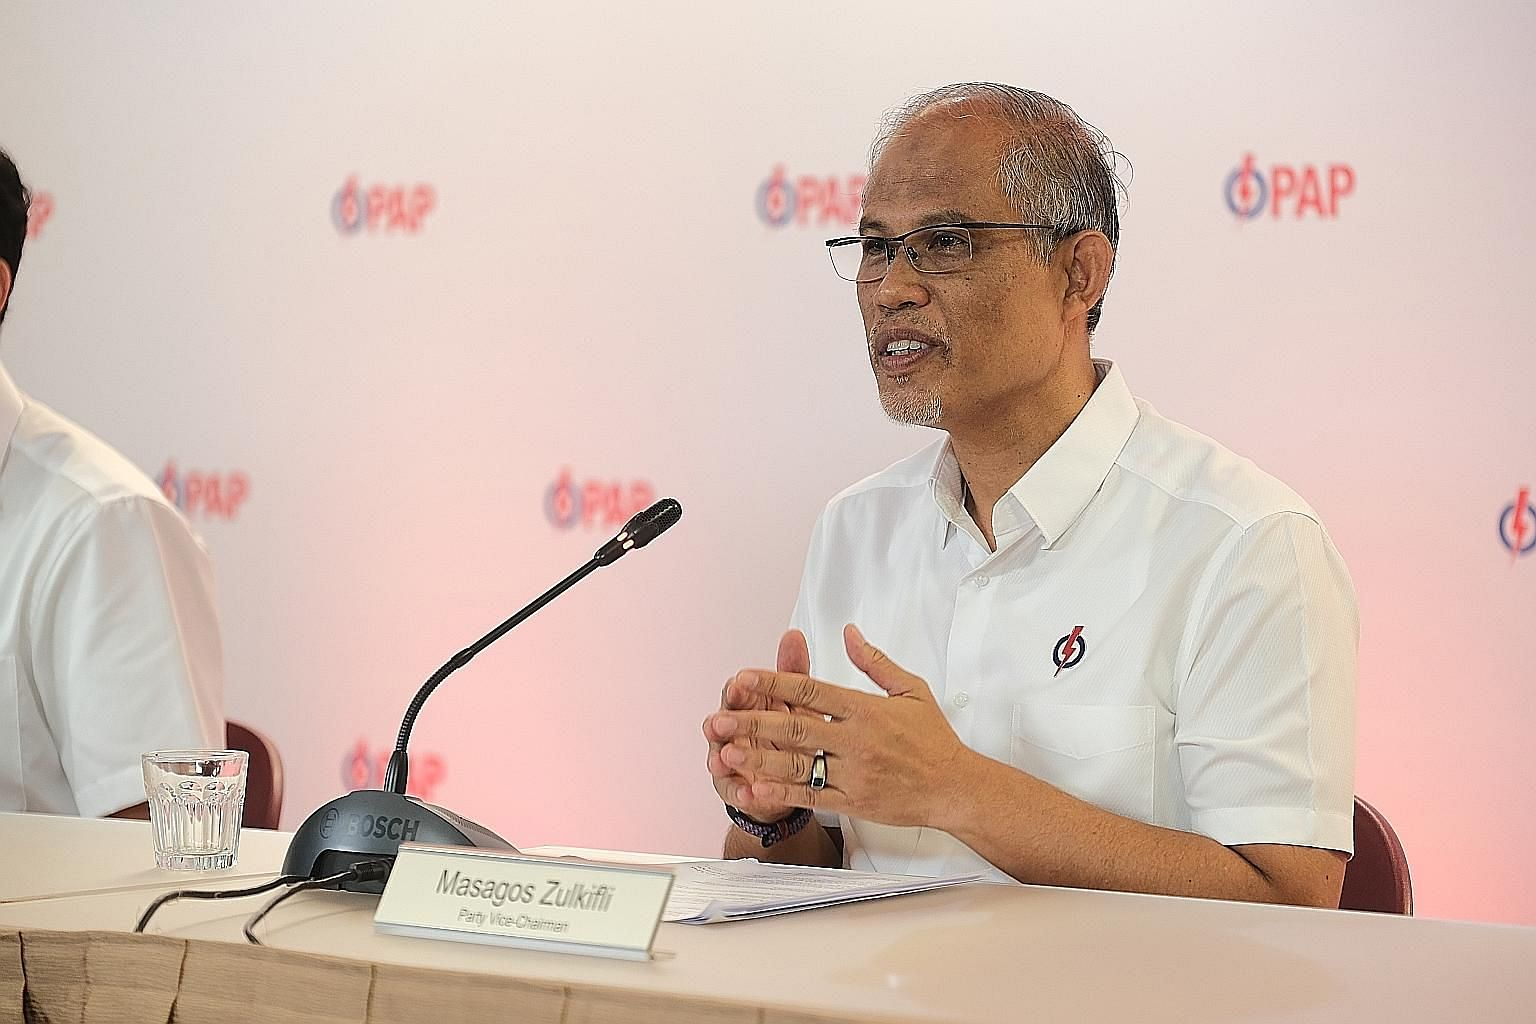 Candidates should not be defined by a single moment in time or in their career, PAP vice-chairman Masagos Zulkifli said. PHOTO: PAP